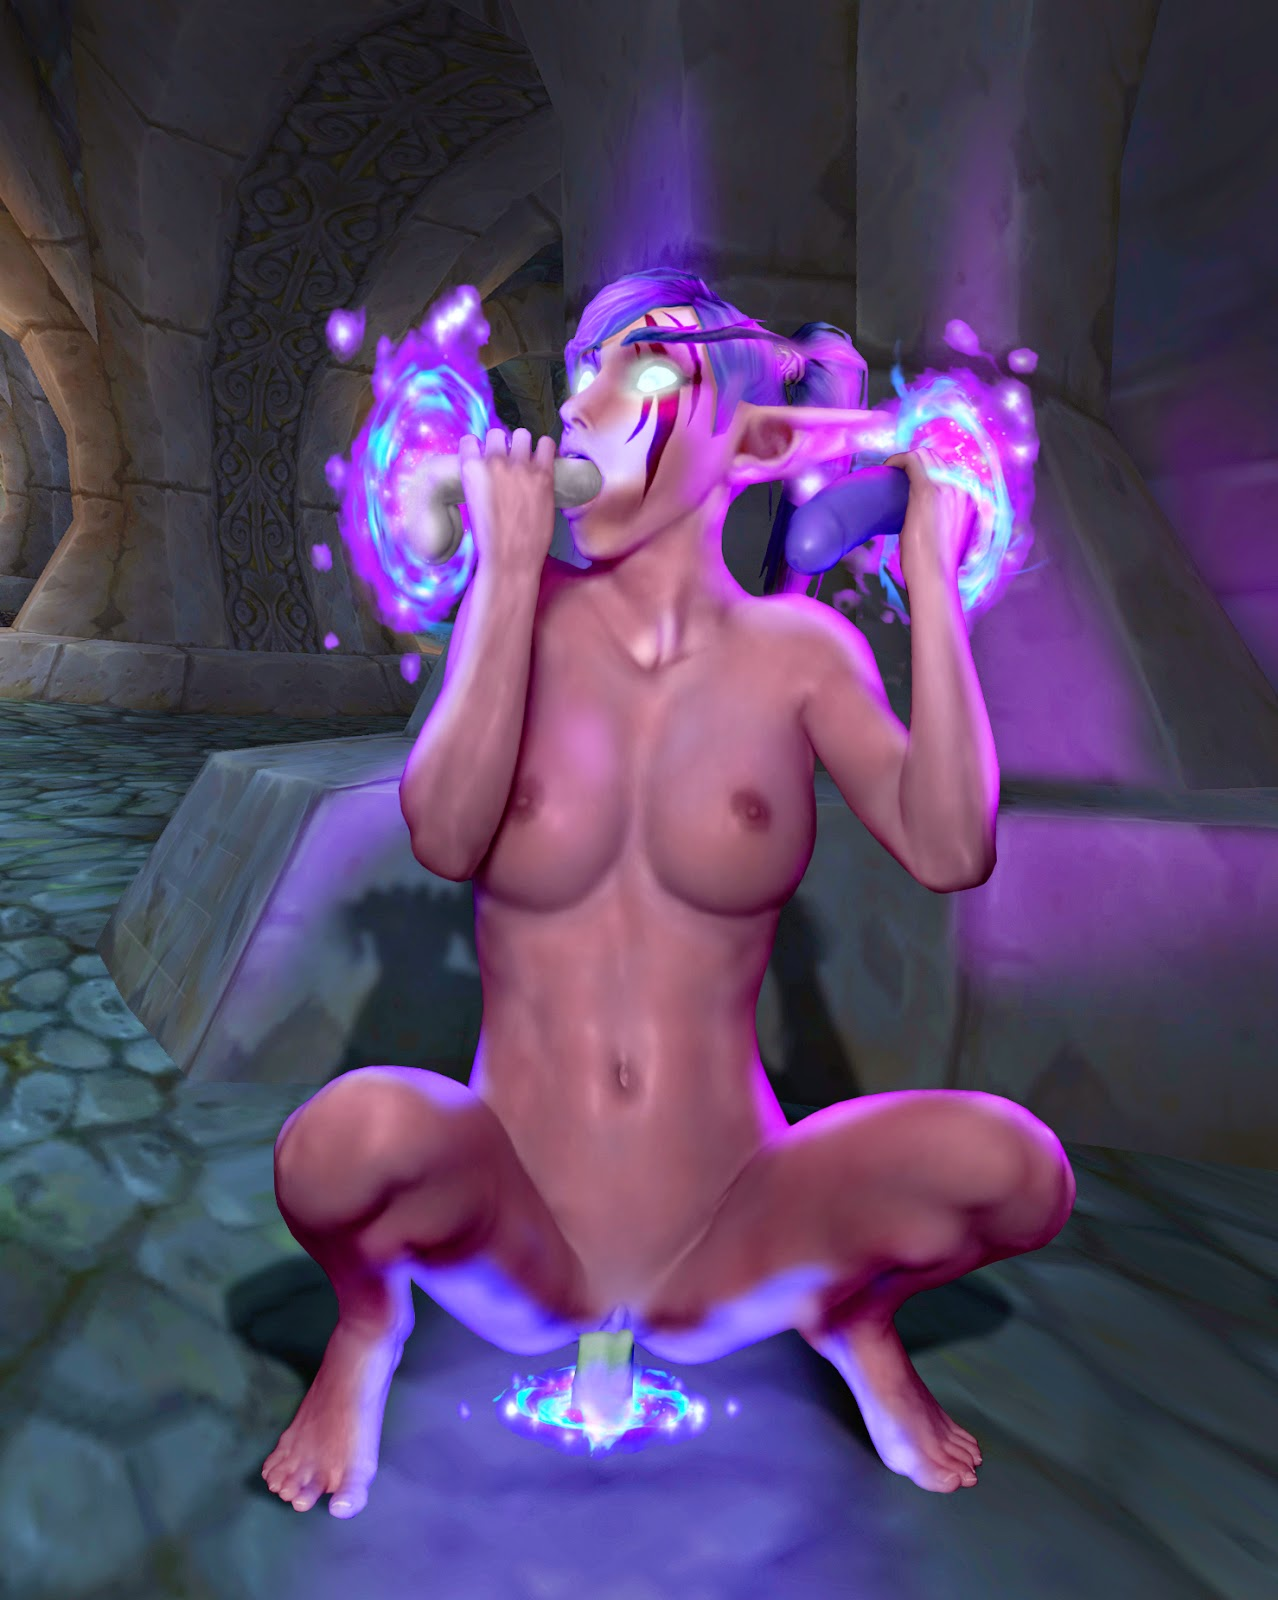 Nightelf 3d sex xxx movies